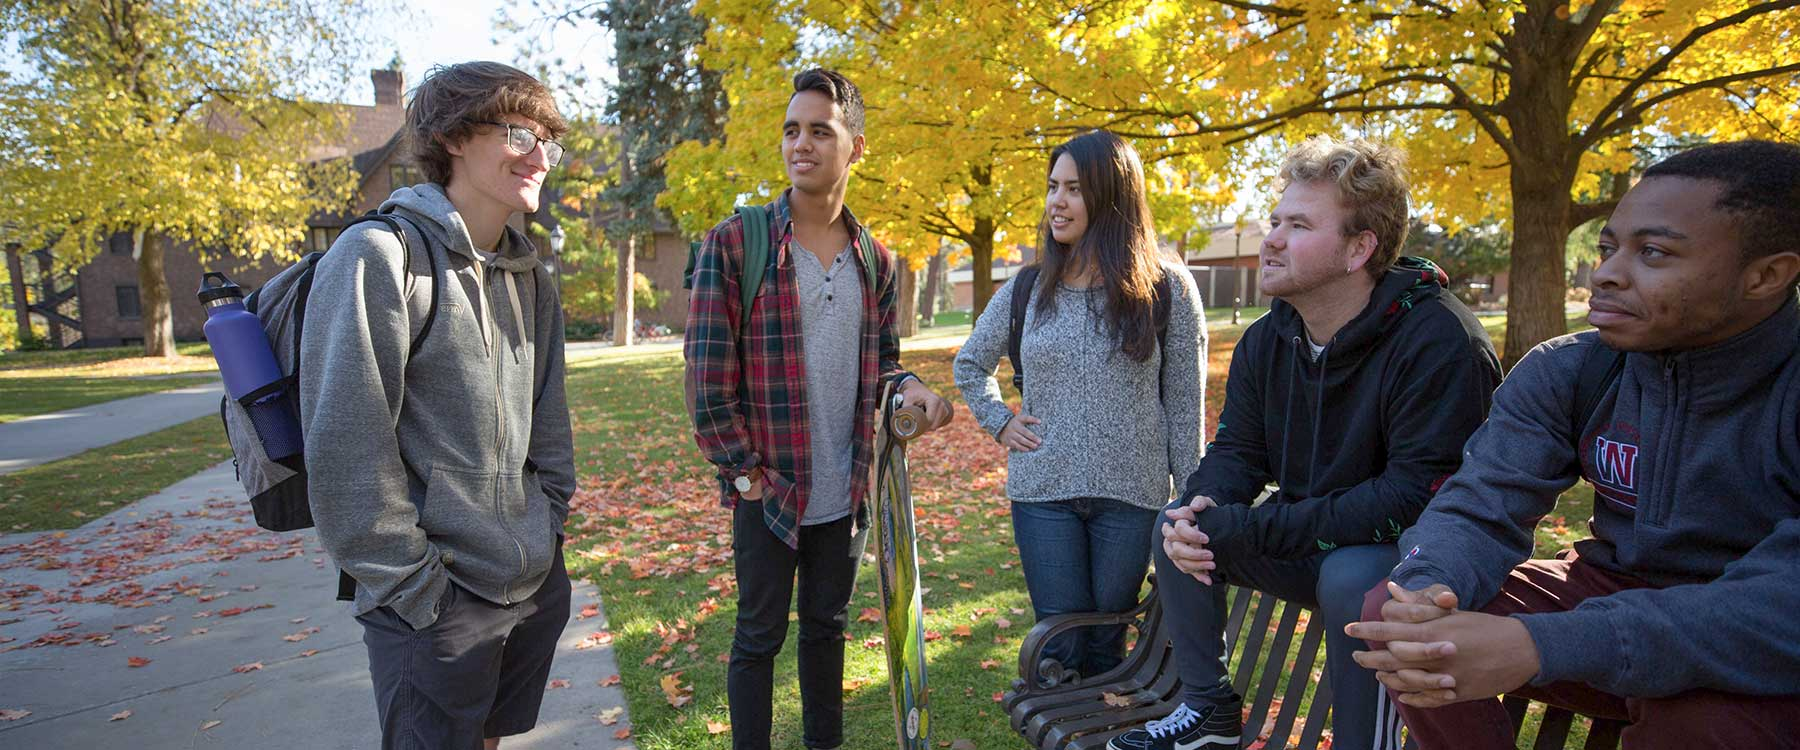 A group of students talk with one another while on campus.